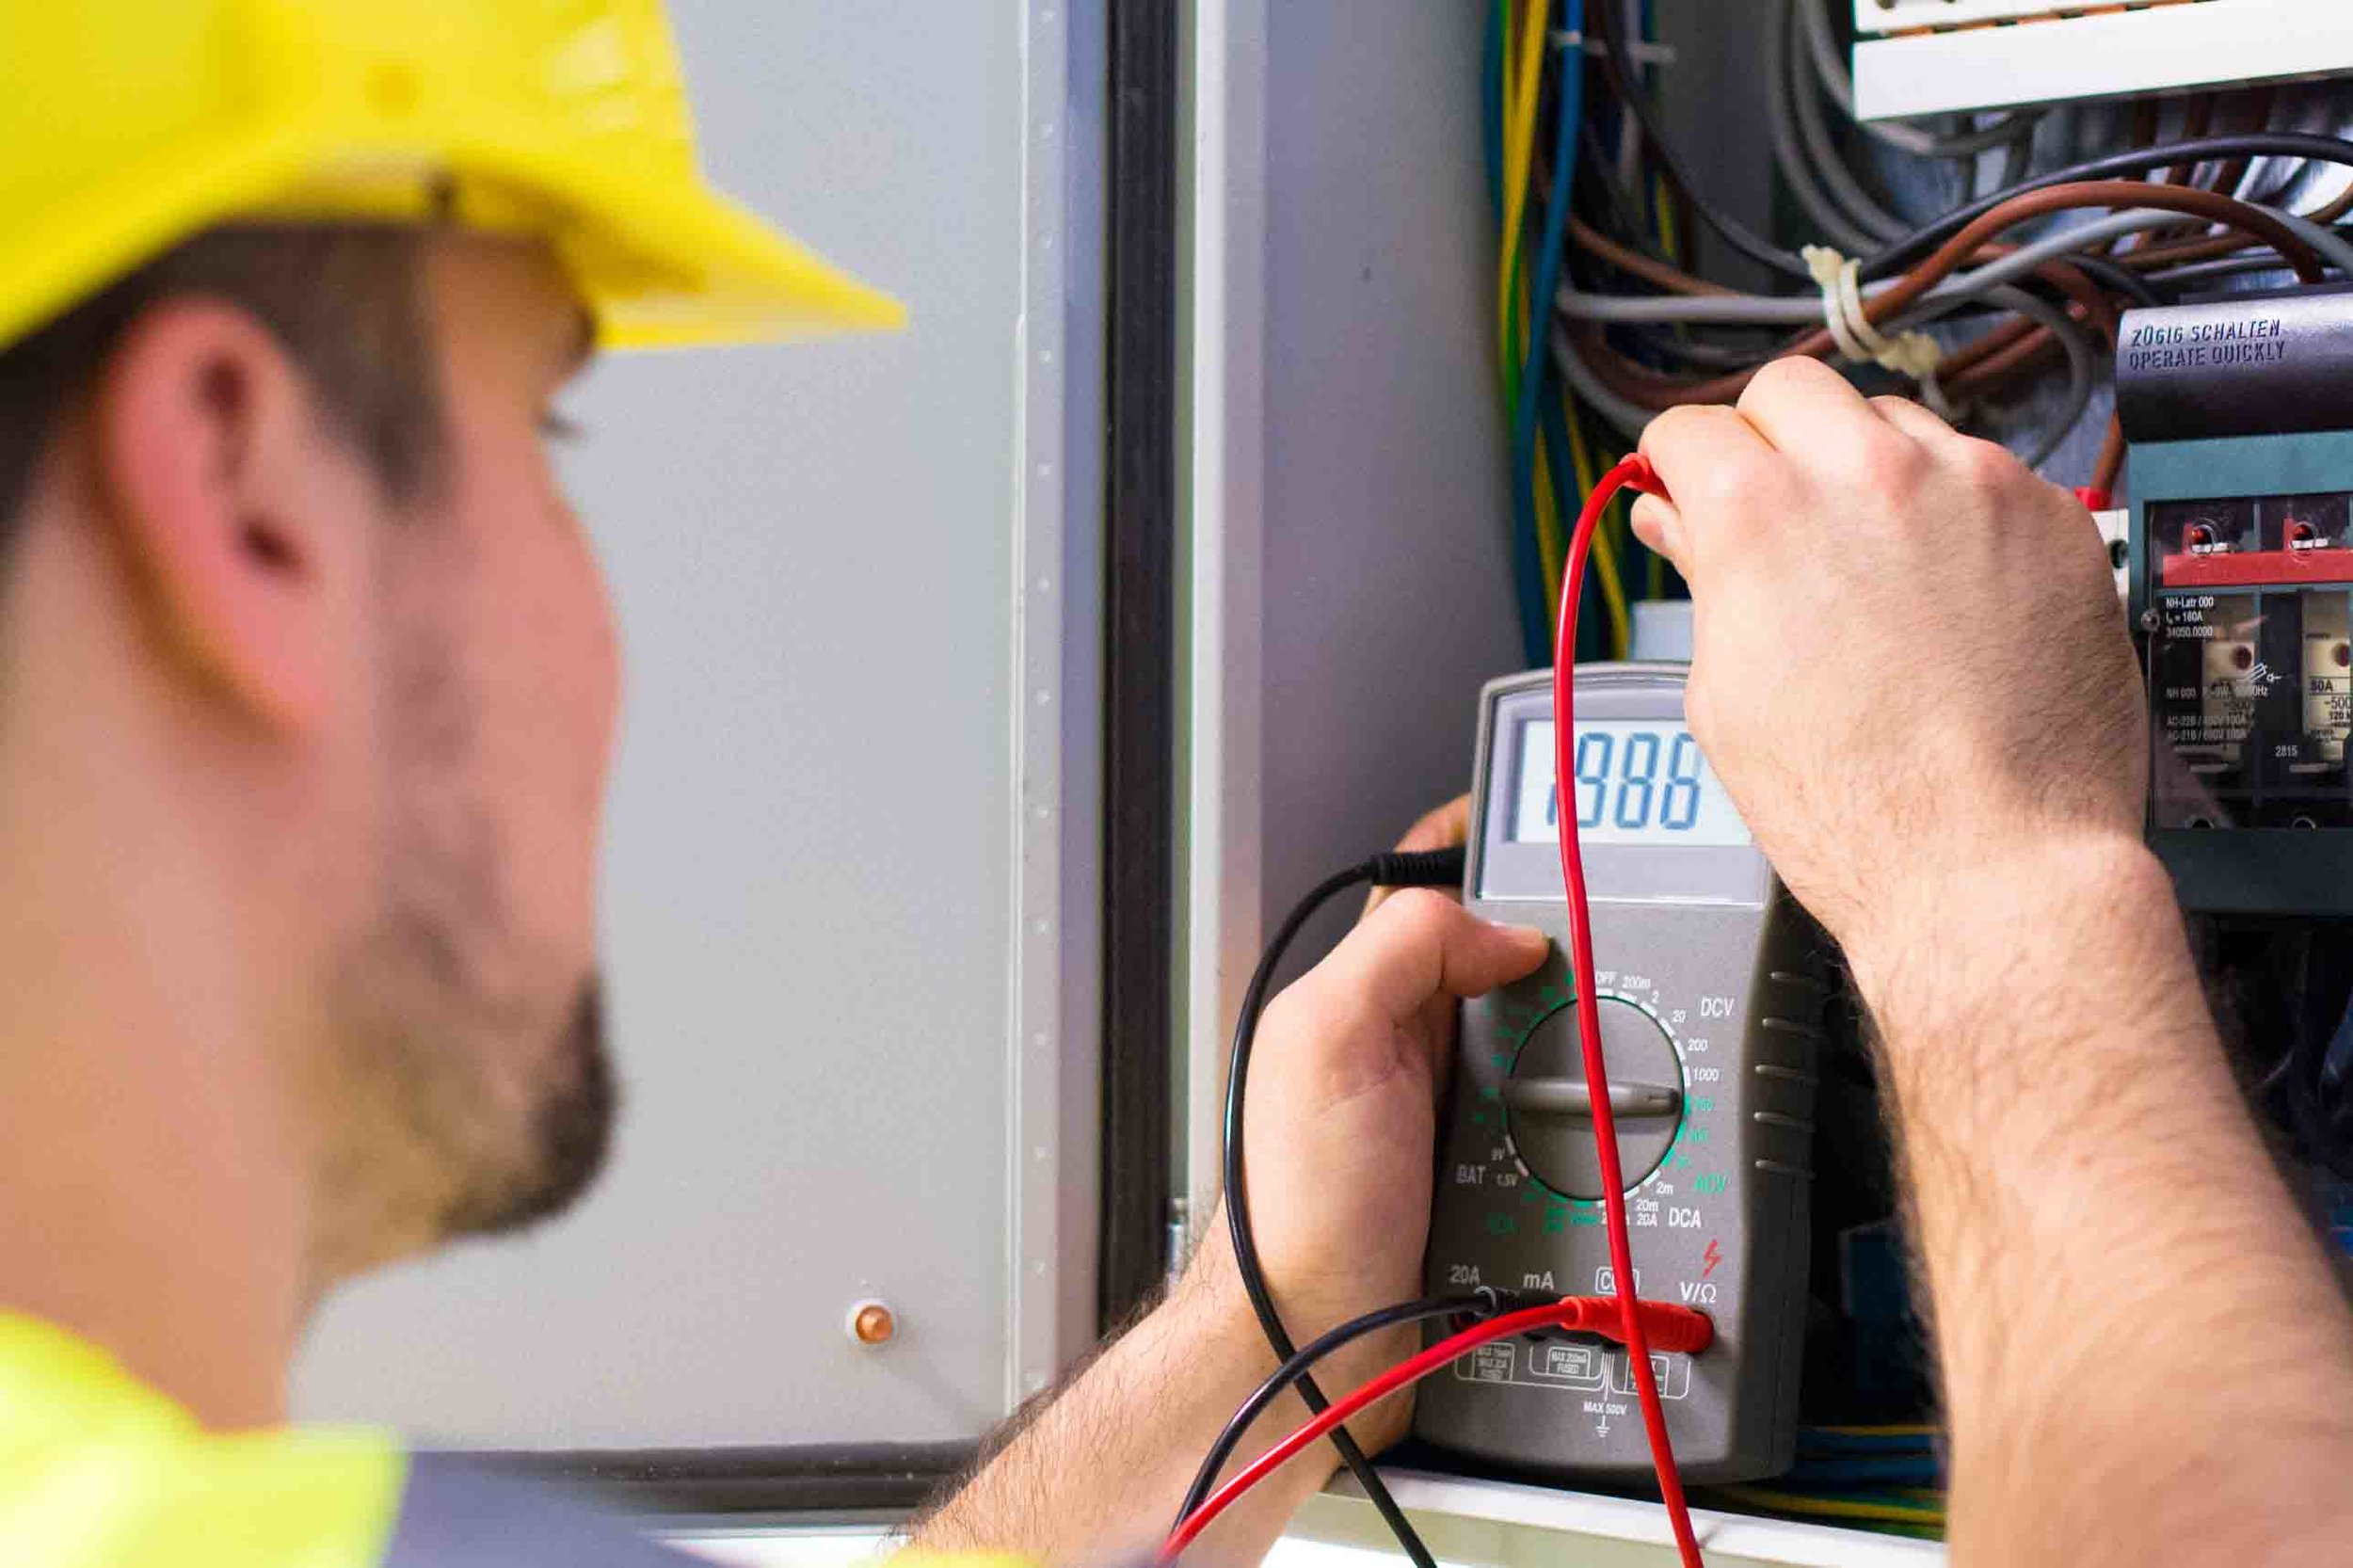 Electric Supply Company implements NetBrain as-a-Service - When Crescent Electric needed a better approach to performing critical security updates on its servers and applications, they enlisted the Burwood team for a streamlined solution.